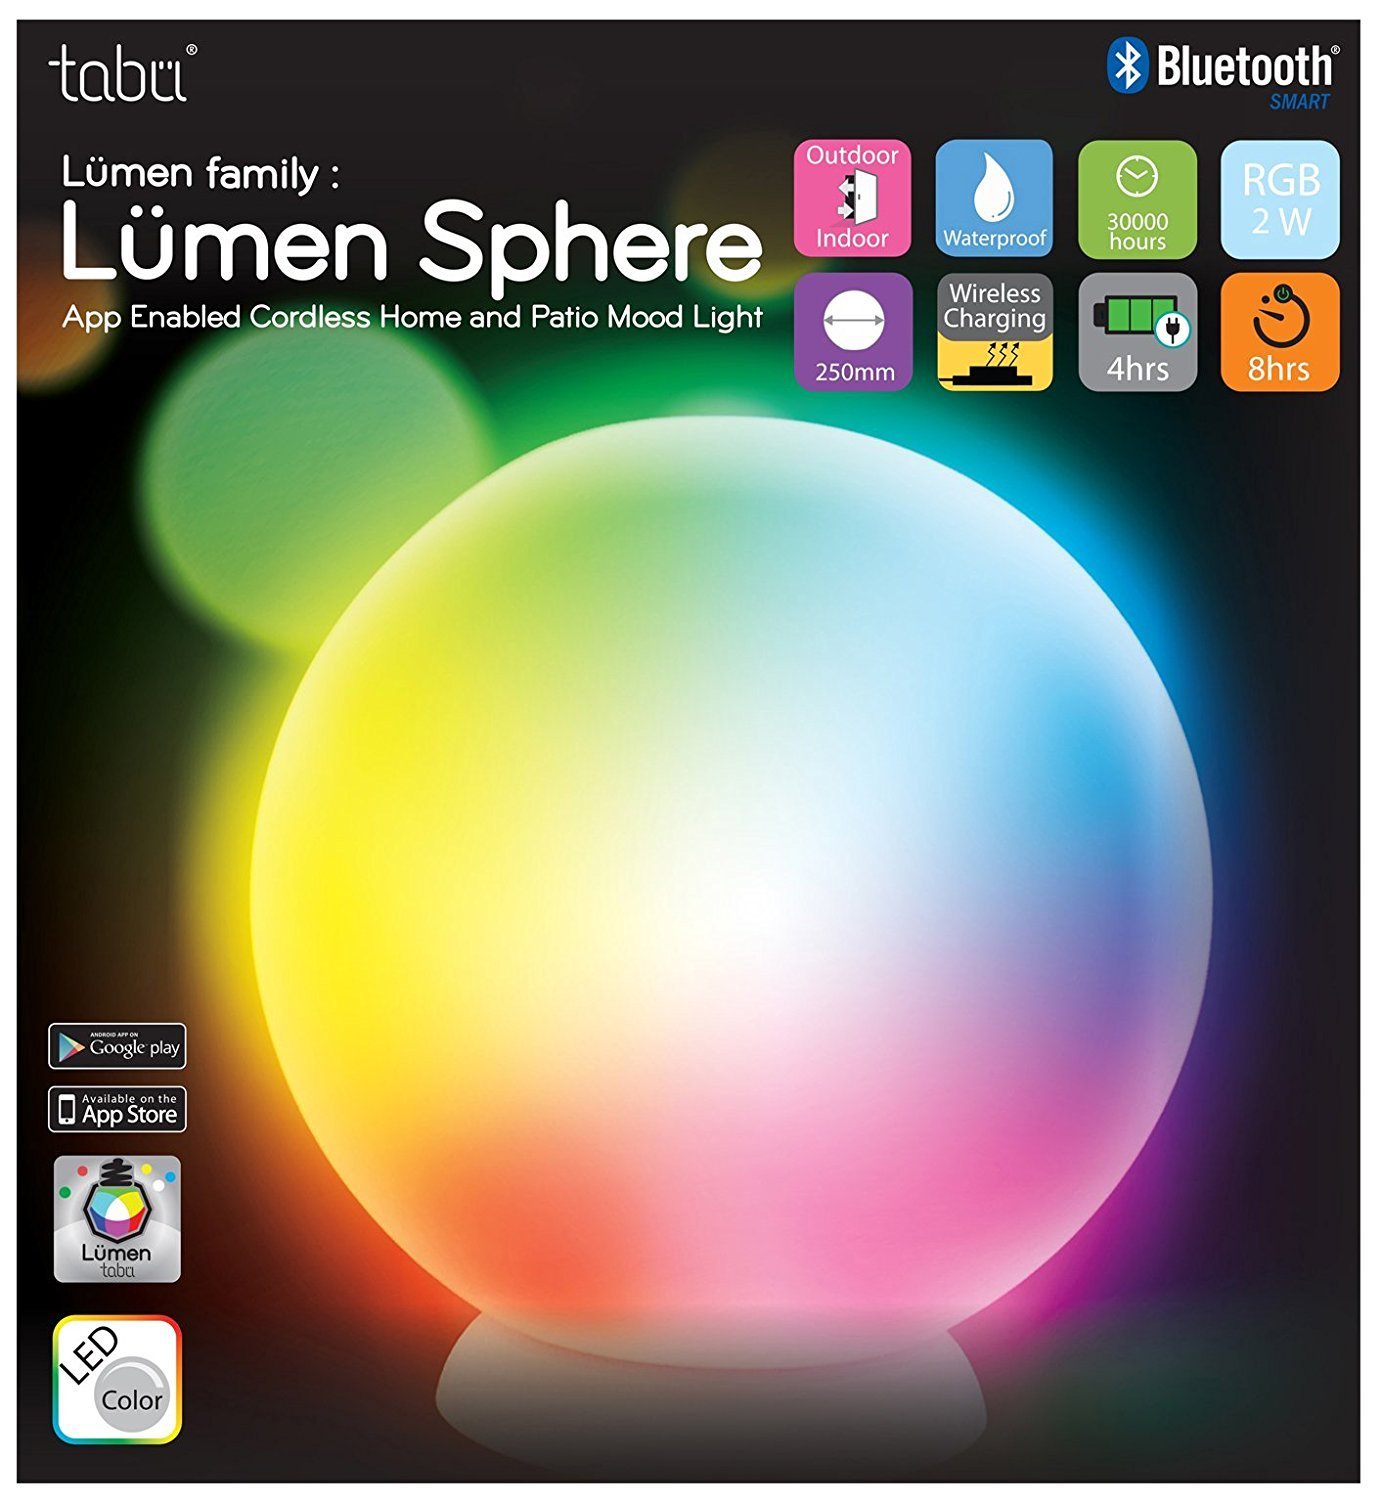 Tabu Lumen TL 700 Sphere Cordless Home and Patio Mood Light by Tabu Lumen